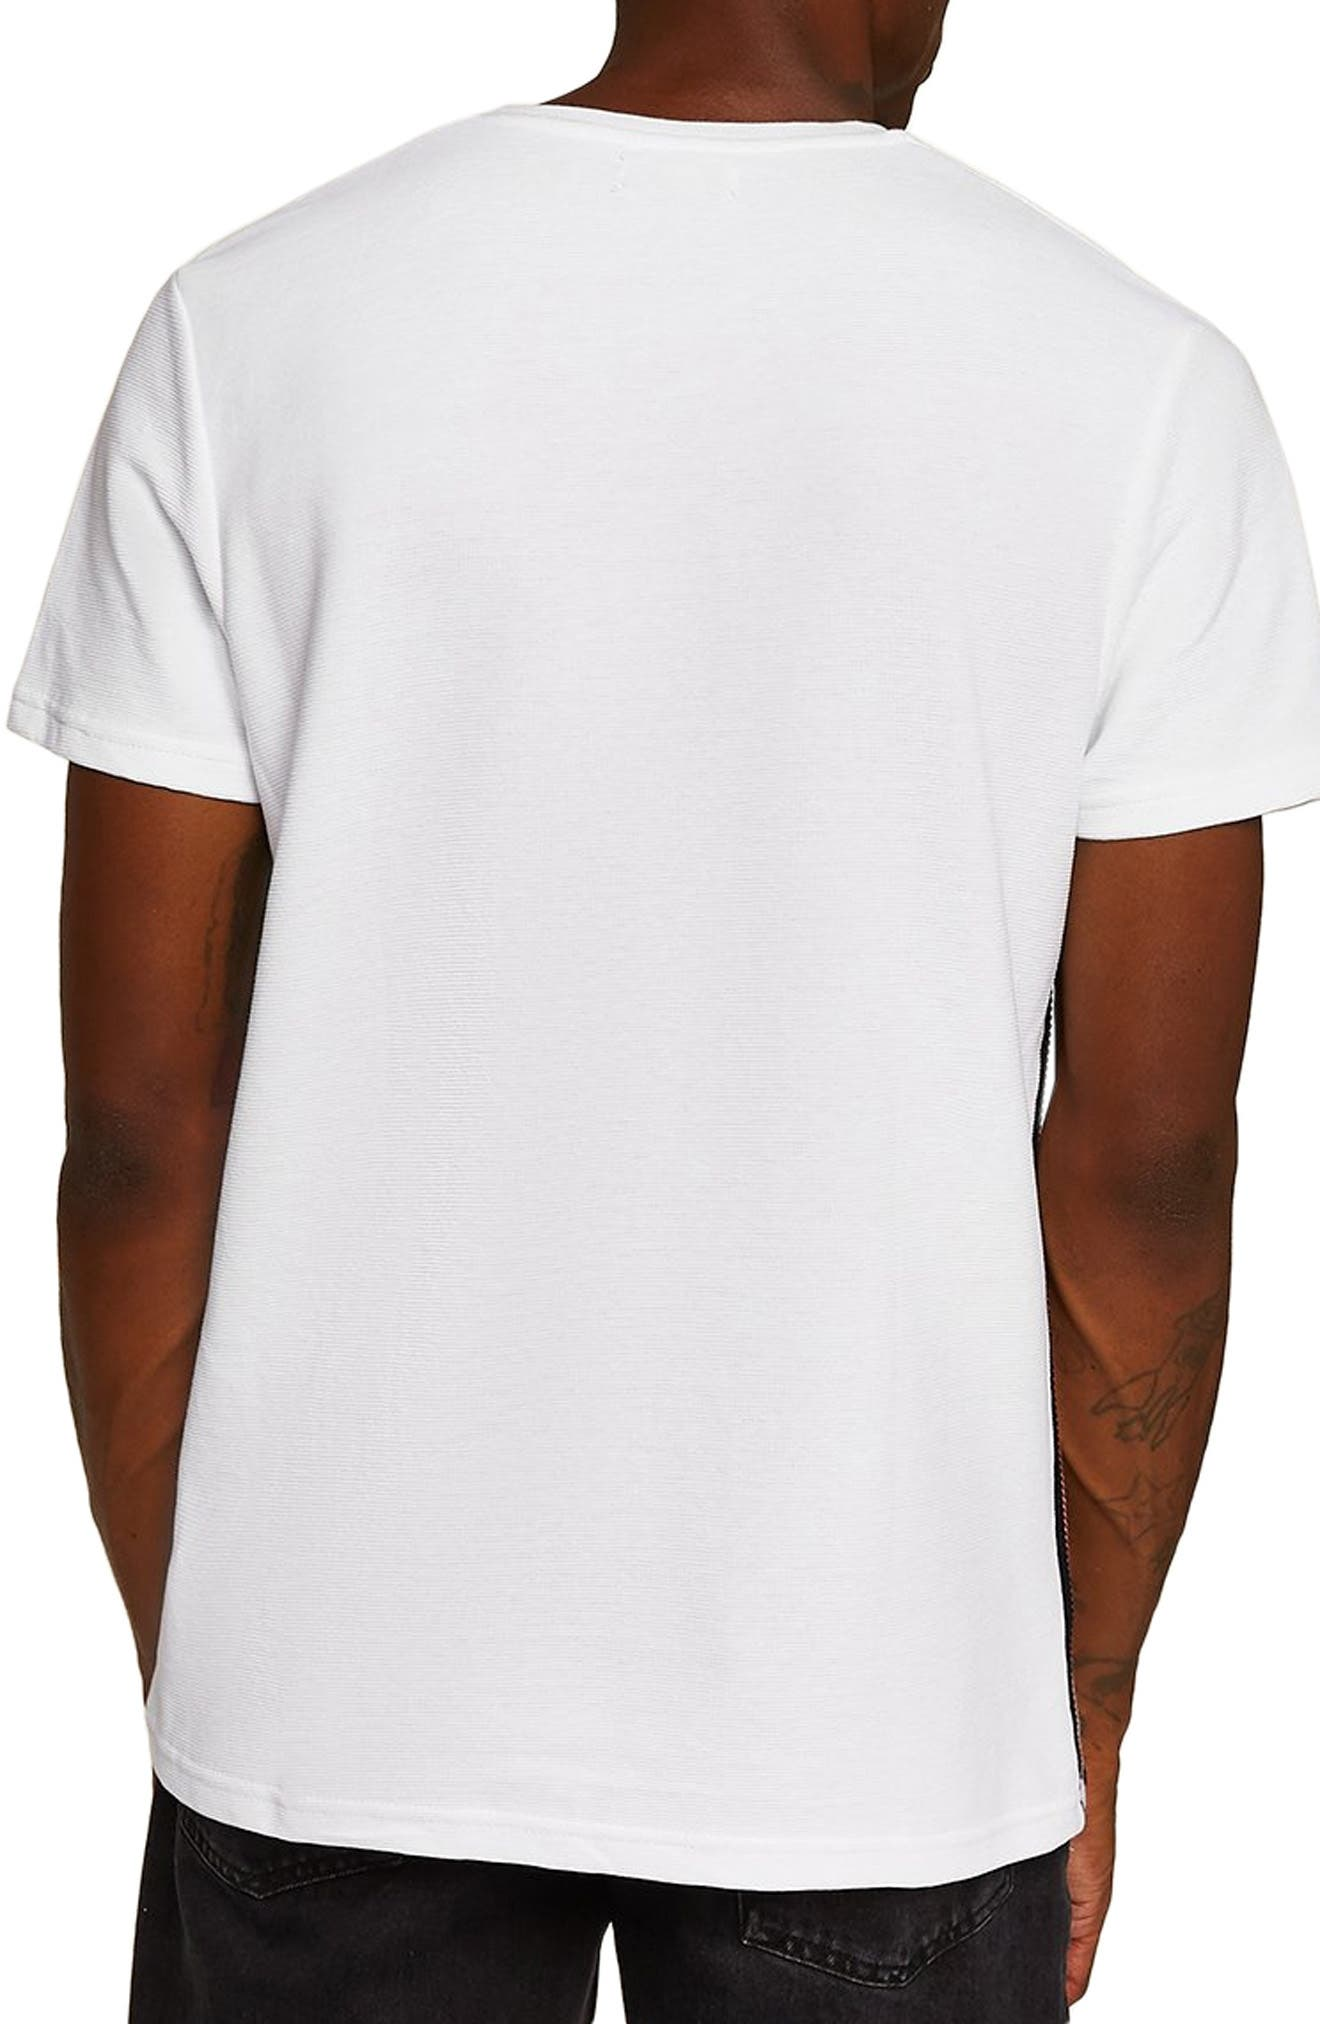 Otto Slim Fit Side Tape T-Shirt,                             Alternate thumbnail 2, color,                             100